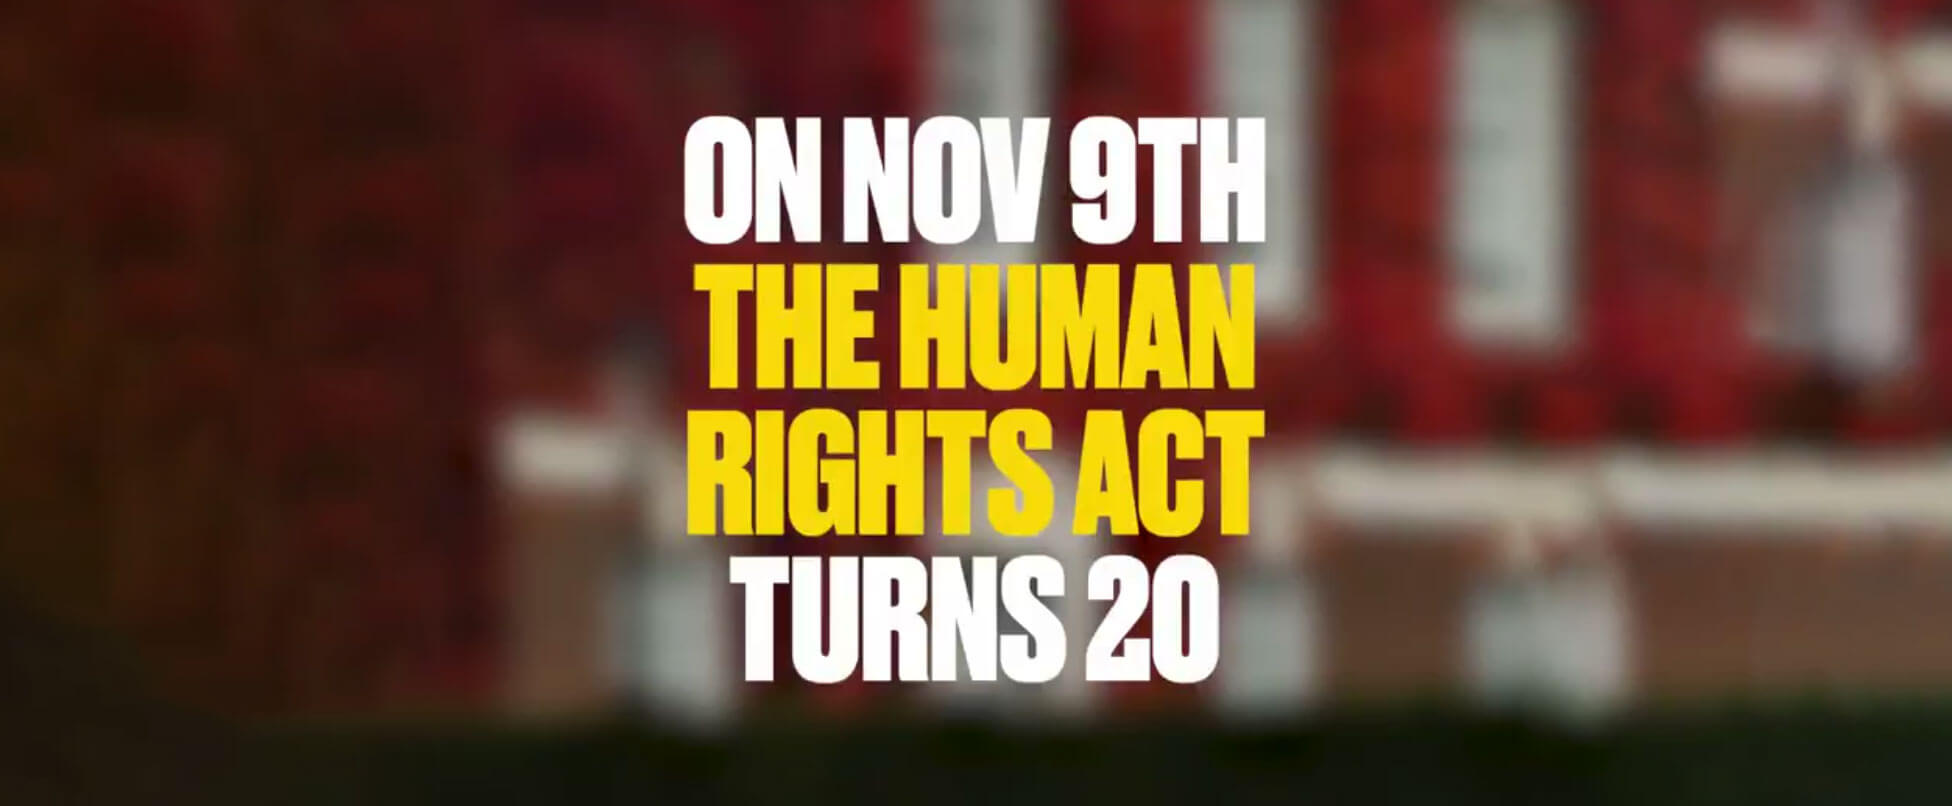 20 years of Human Rights Act